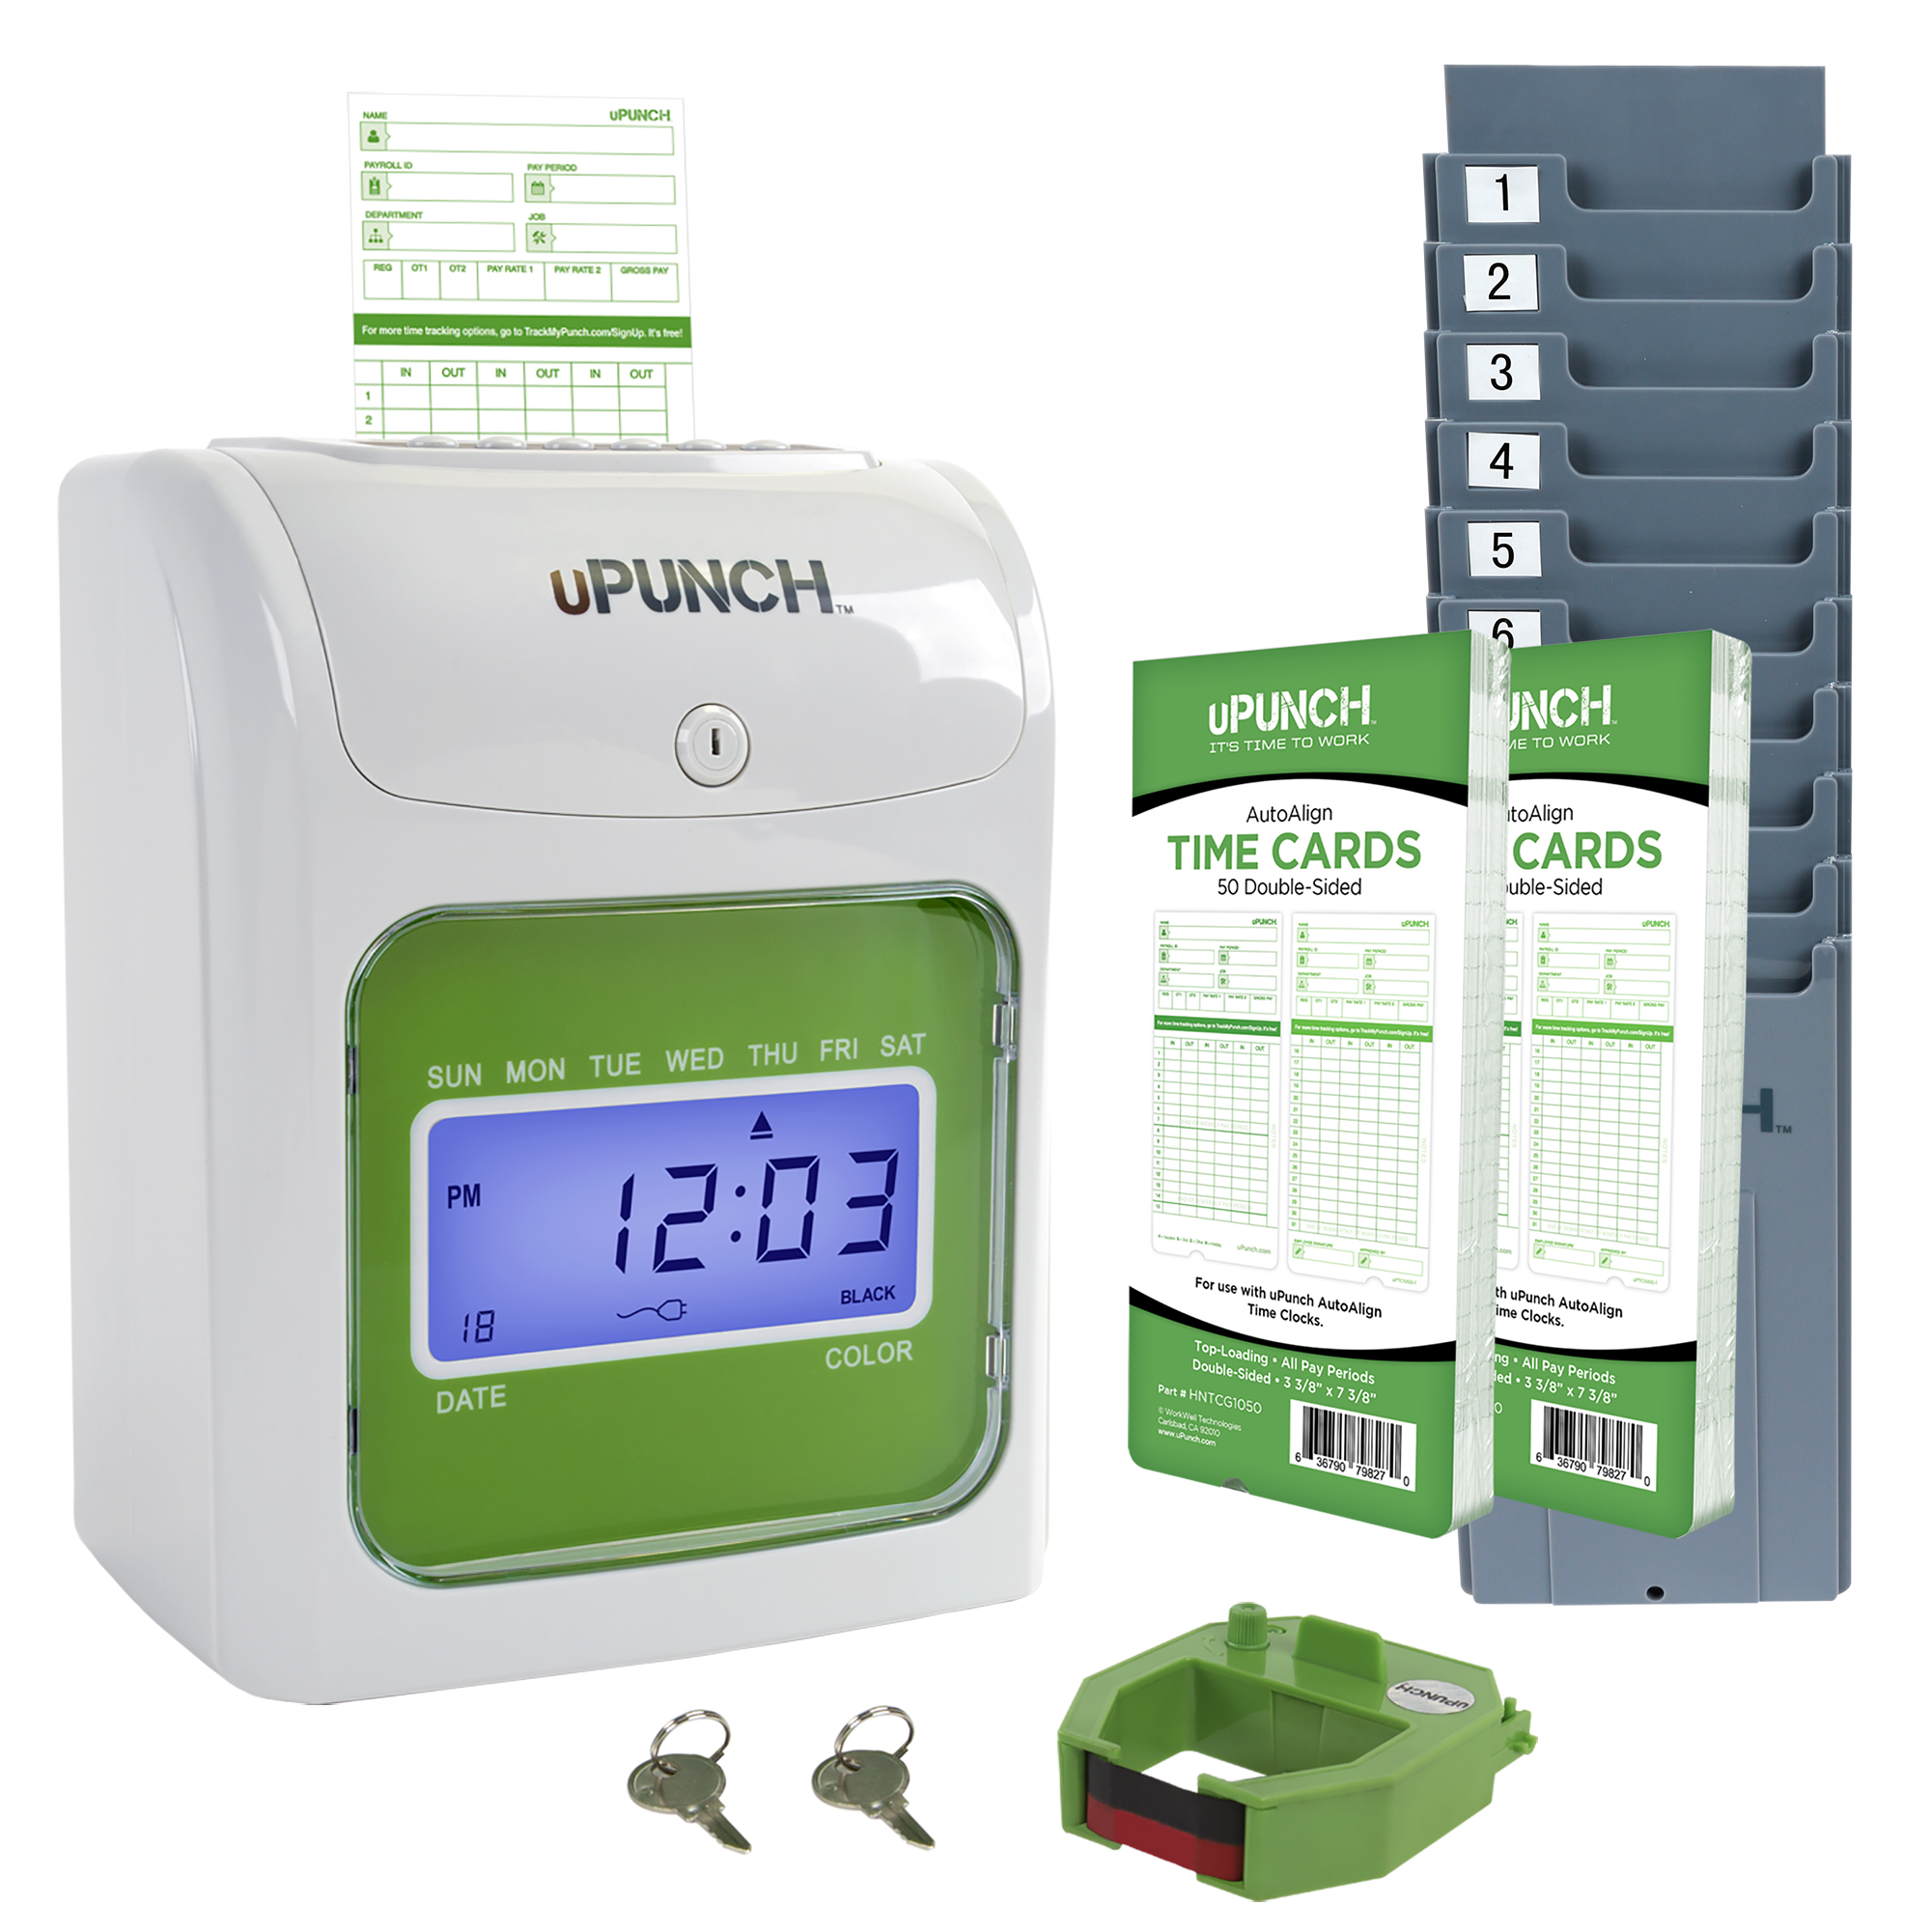 uPunch Time Clock, employee time clock, time card rack, time clock ribbons